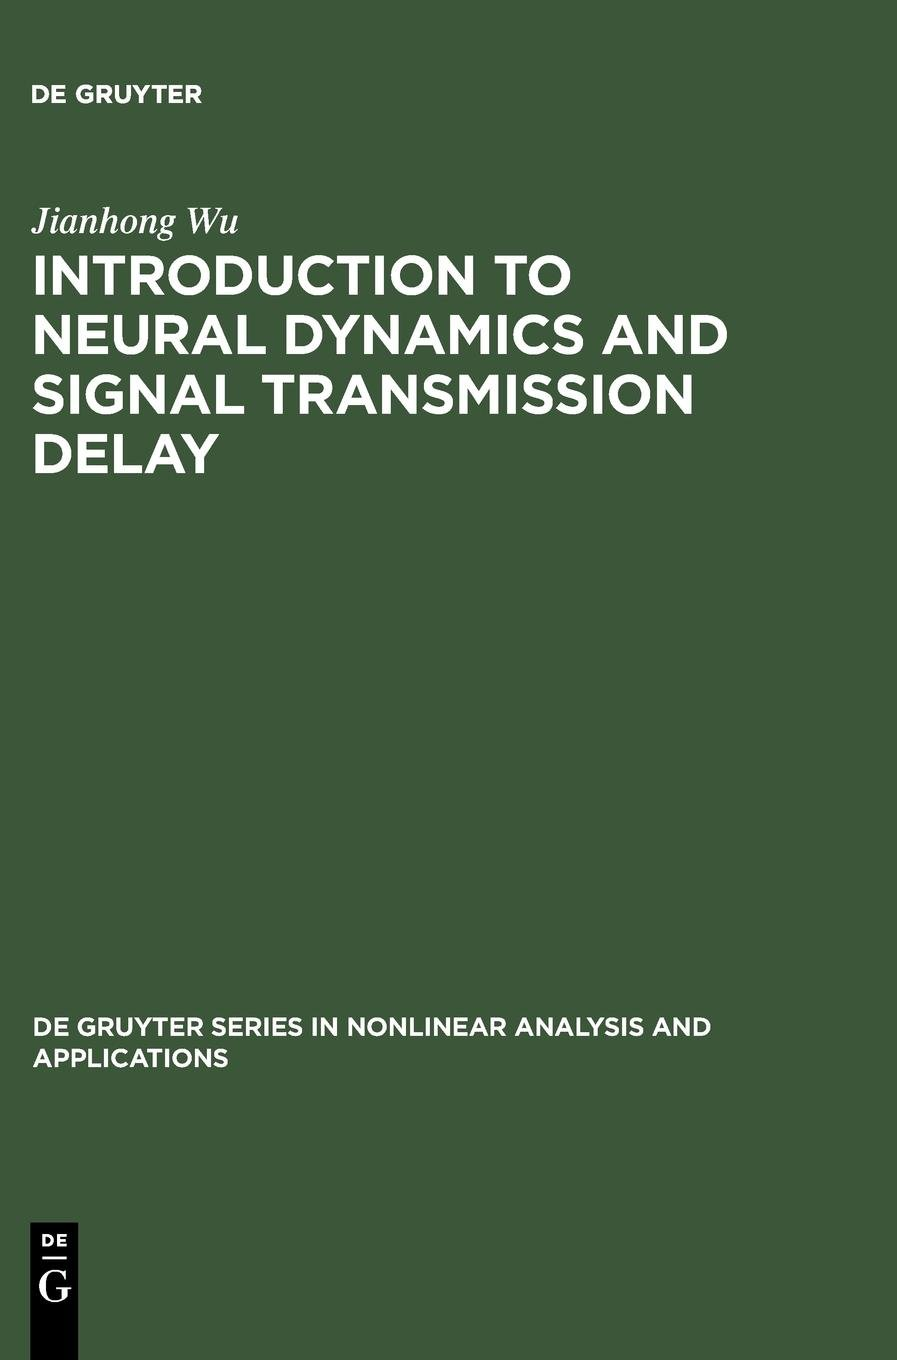 Download Introduction to Neural Dynamics and Signal Transmission Delay (De Gruyter Series in Nonlinear Analysis and Applications, 6) PDF